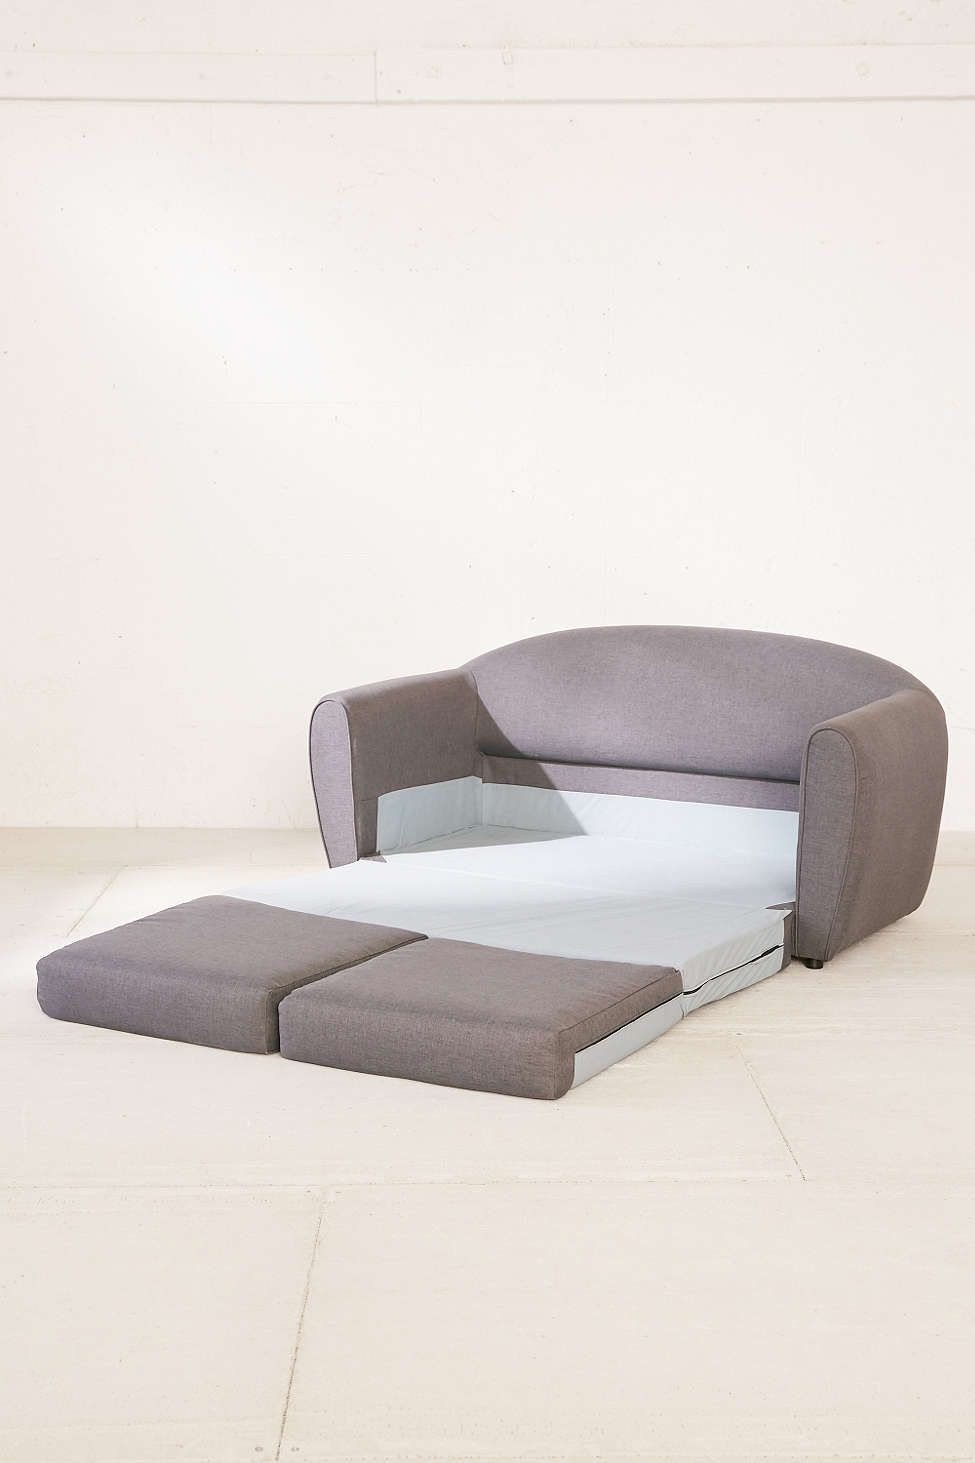 Gentil 22 Cheap Sofas That Actually Look Expensive Trendy Furniture, Furniture  Online, Furniture Movers,